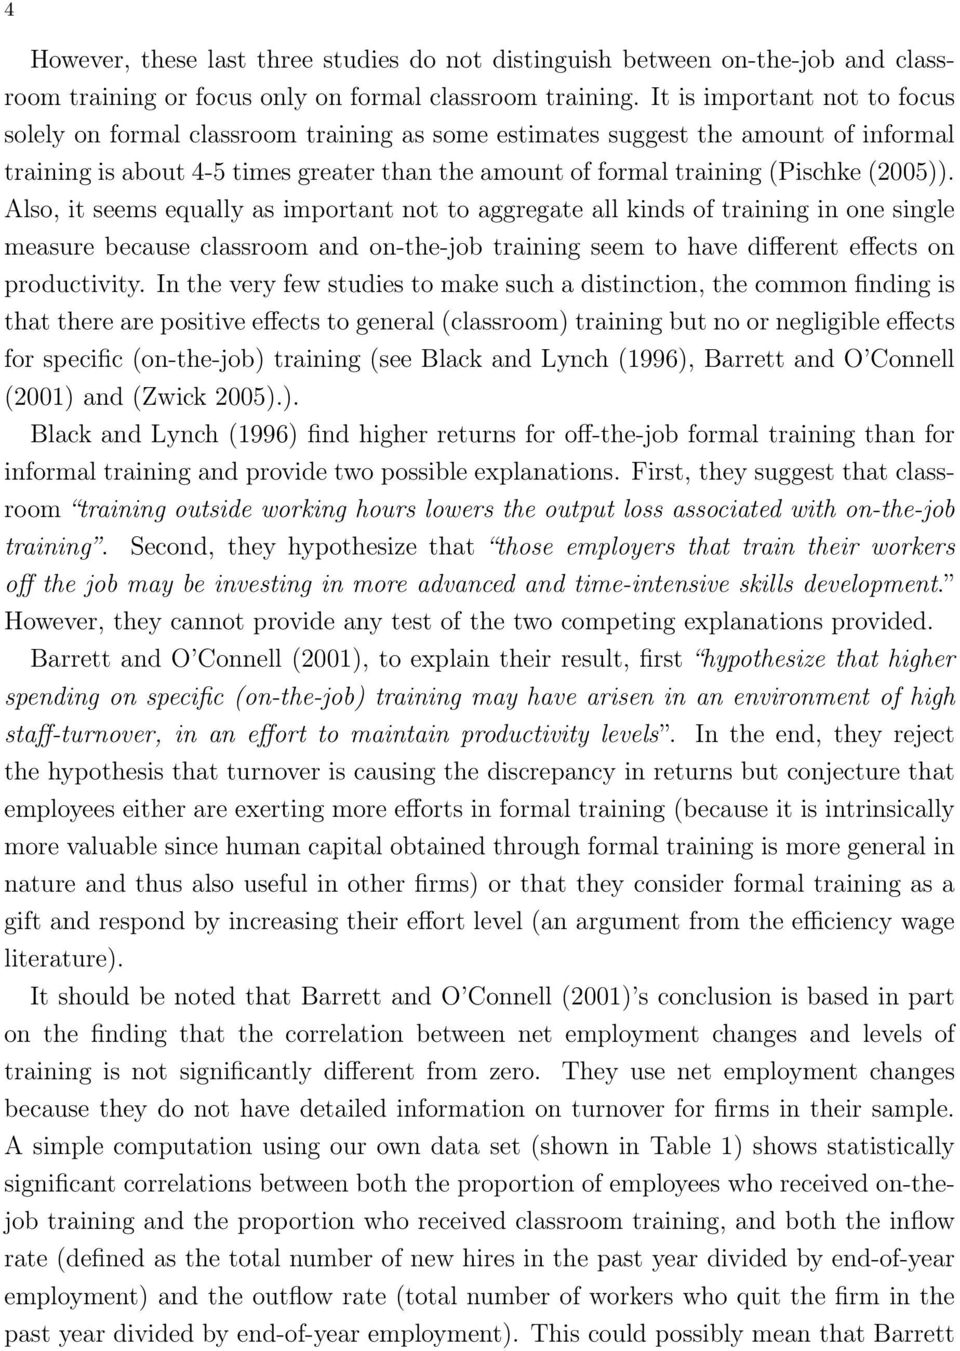 (2005)). Also, it seems equally as important not to aggregate all kinds of training in one single measure because classroom and on-the-job training seem to have different effects on productivity.